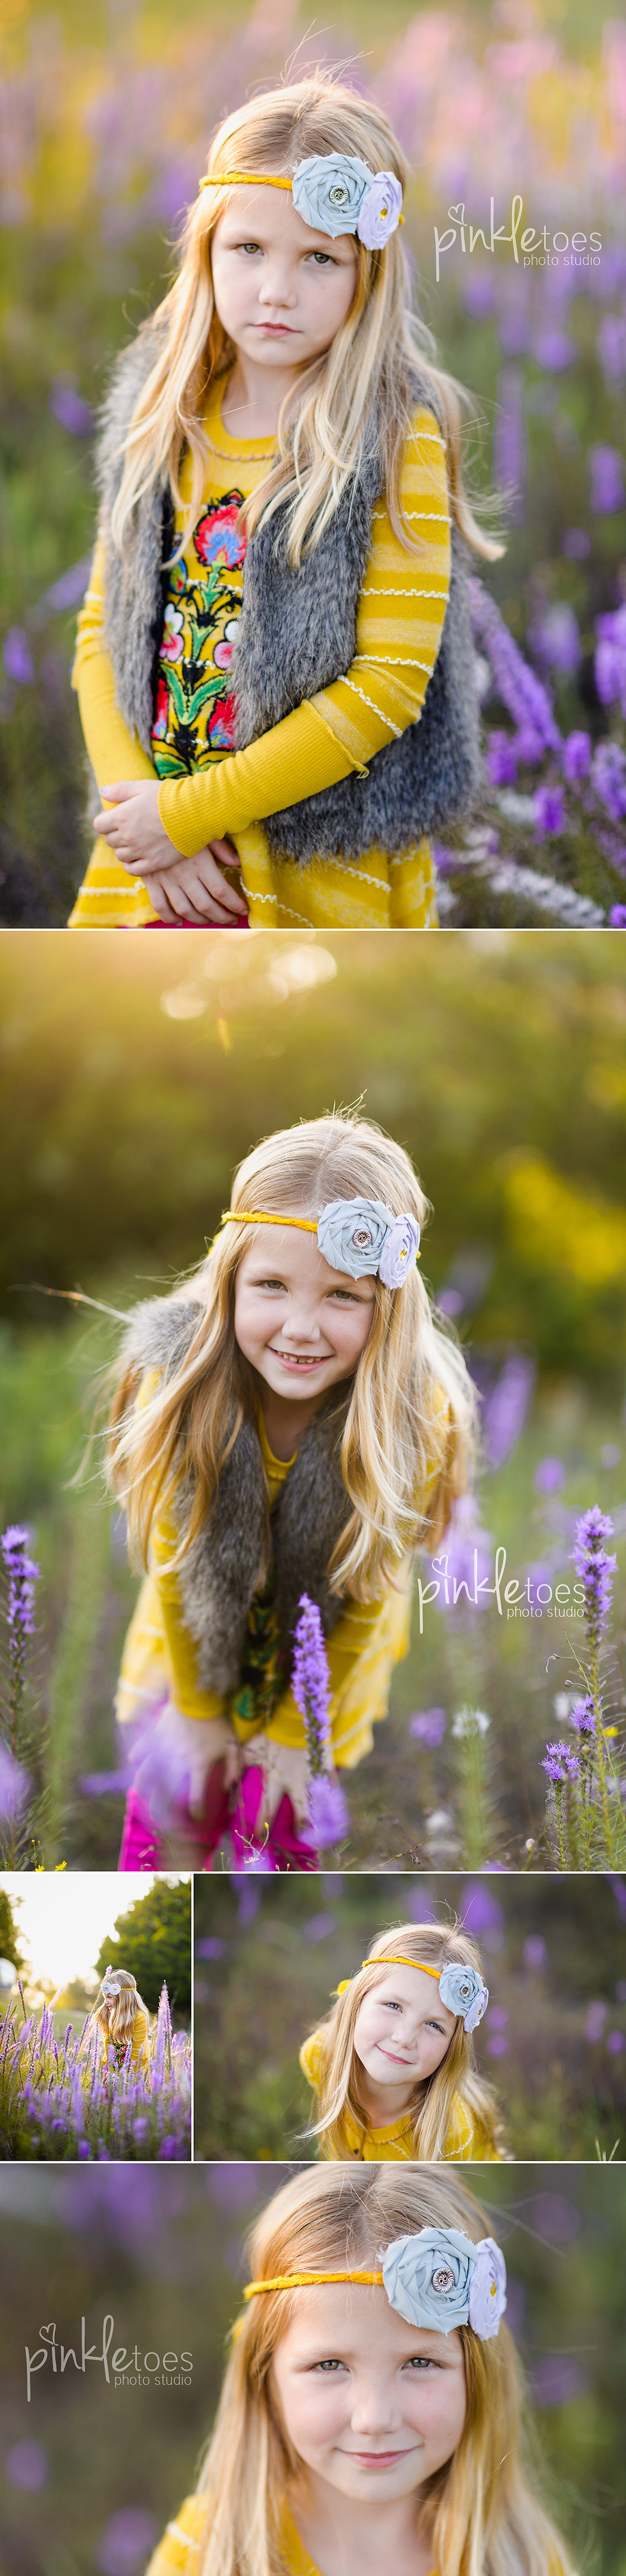 now-pinkle-toes-austin-kid-commercial-photographer-wildflowers